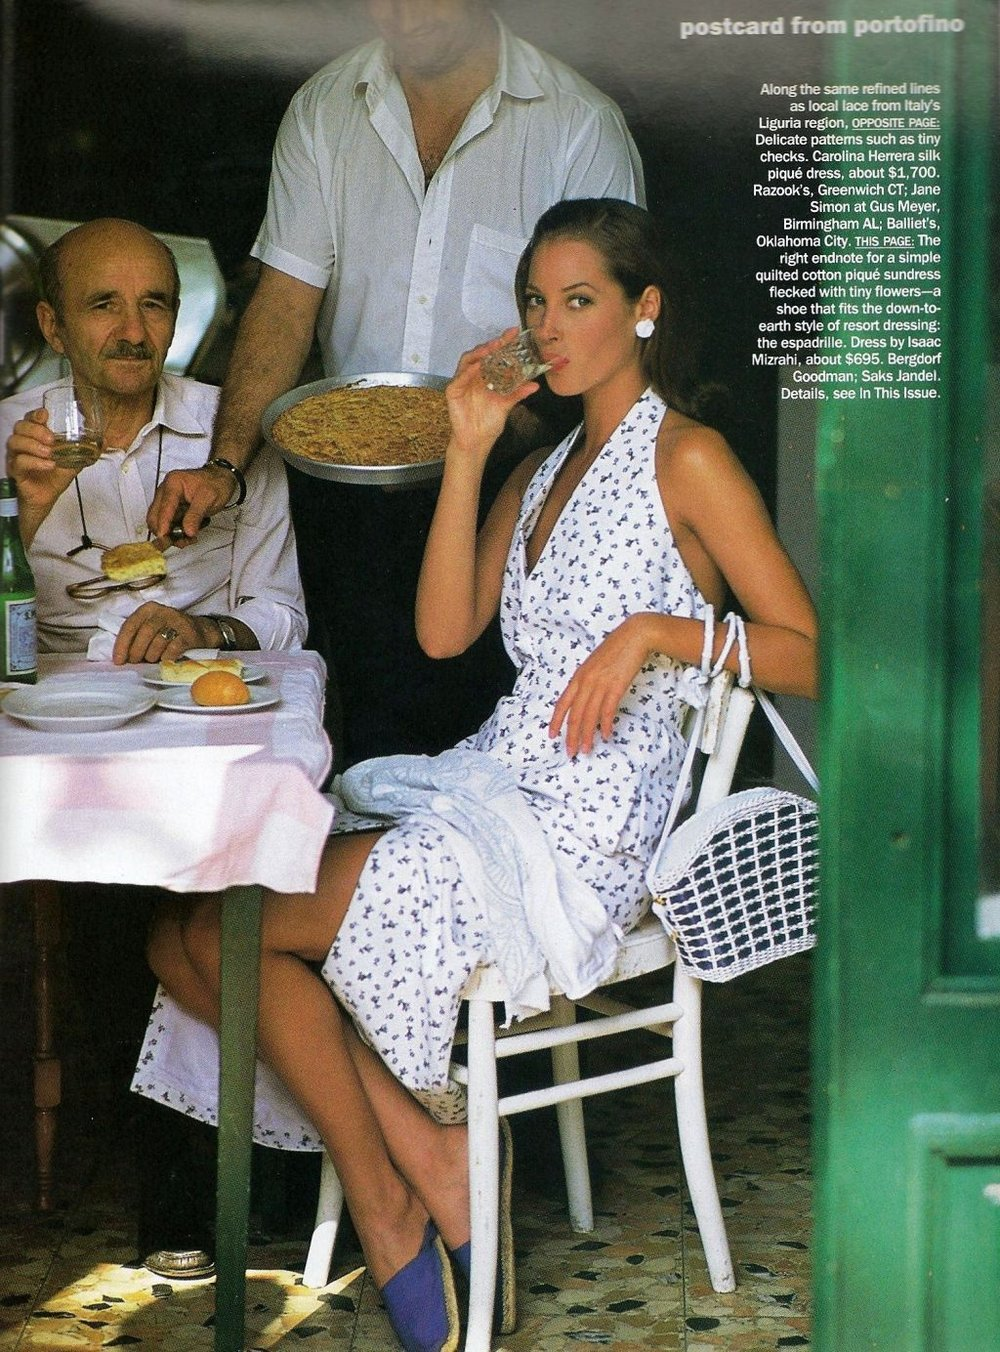 christy-turlington-timeless-summer-style-postcard-from-portofino---.jpg